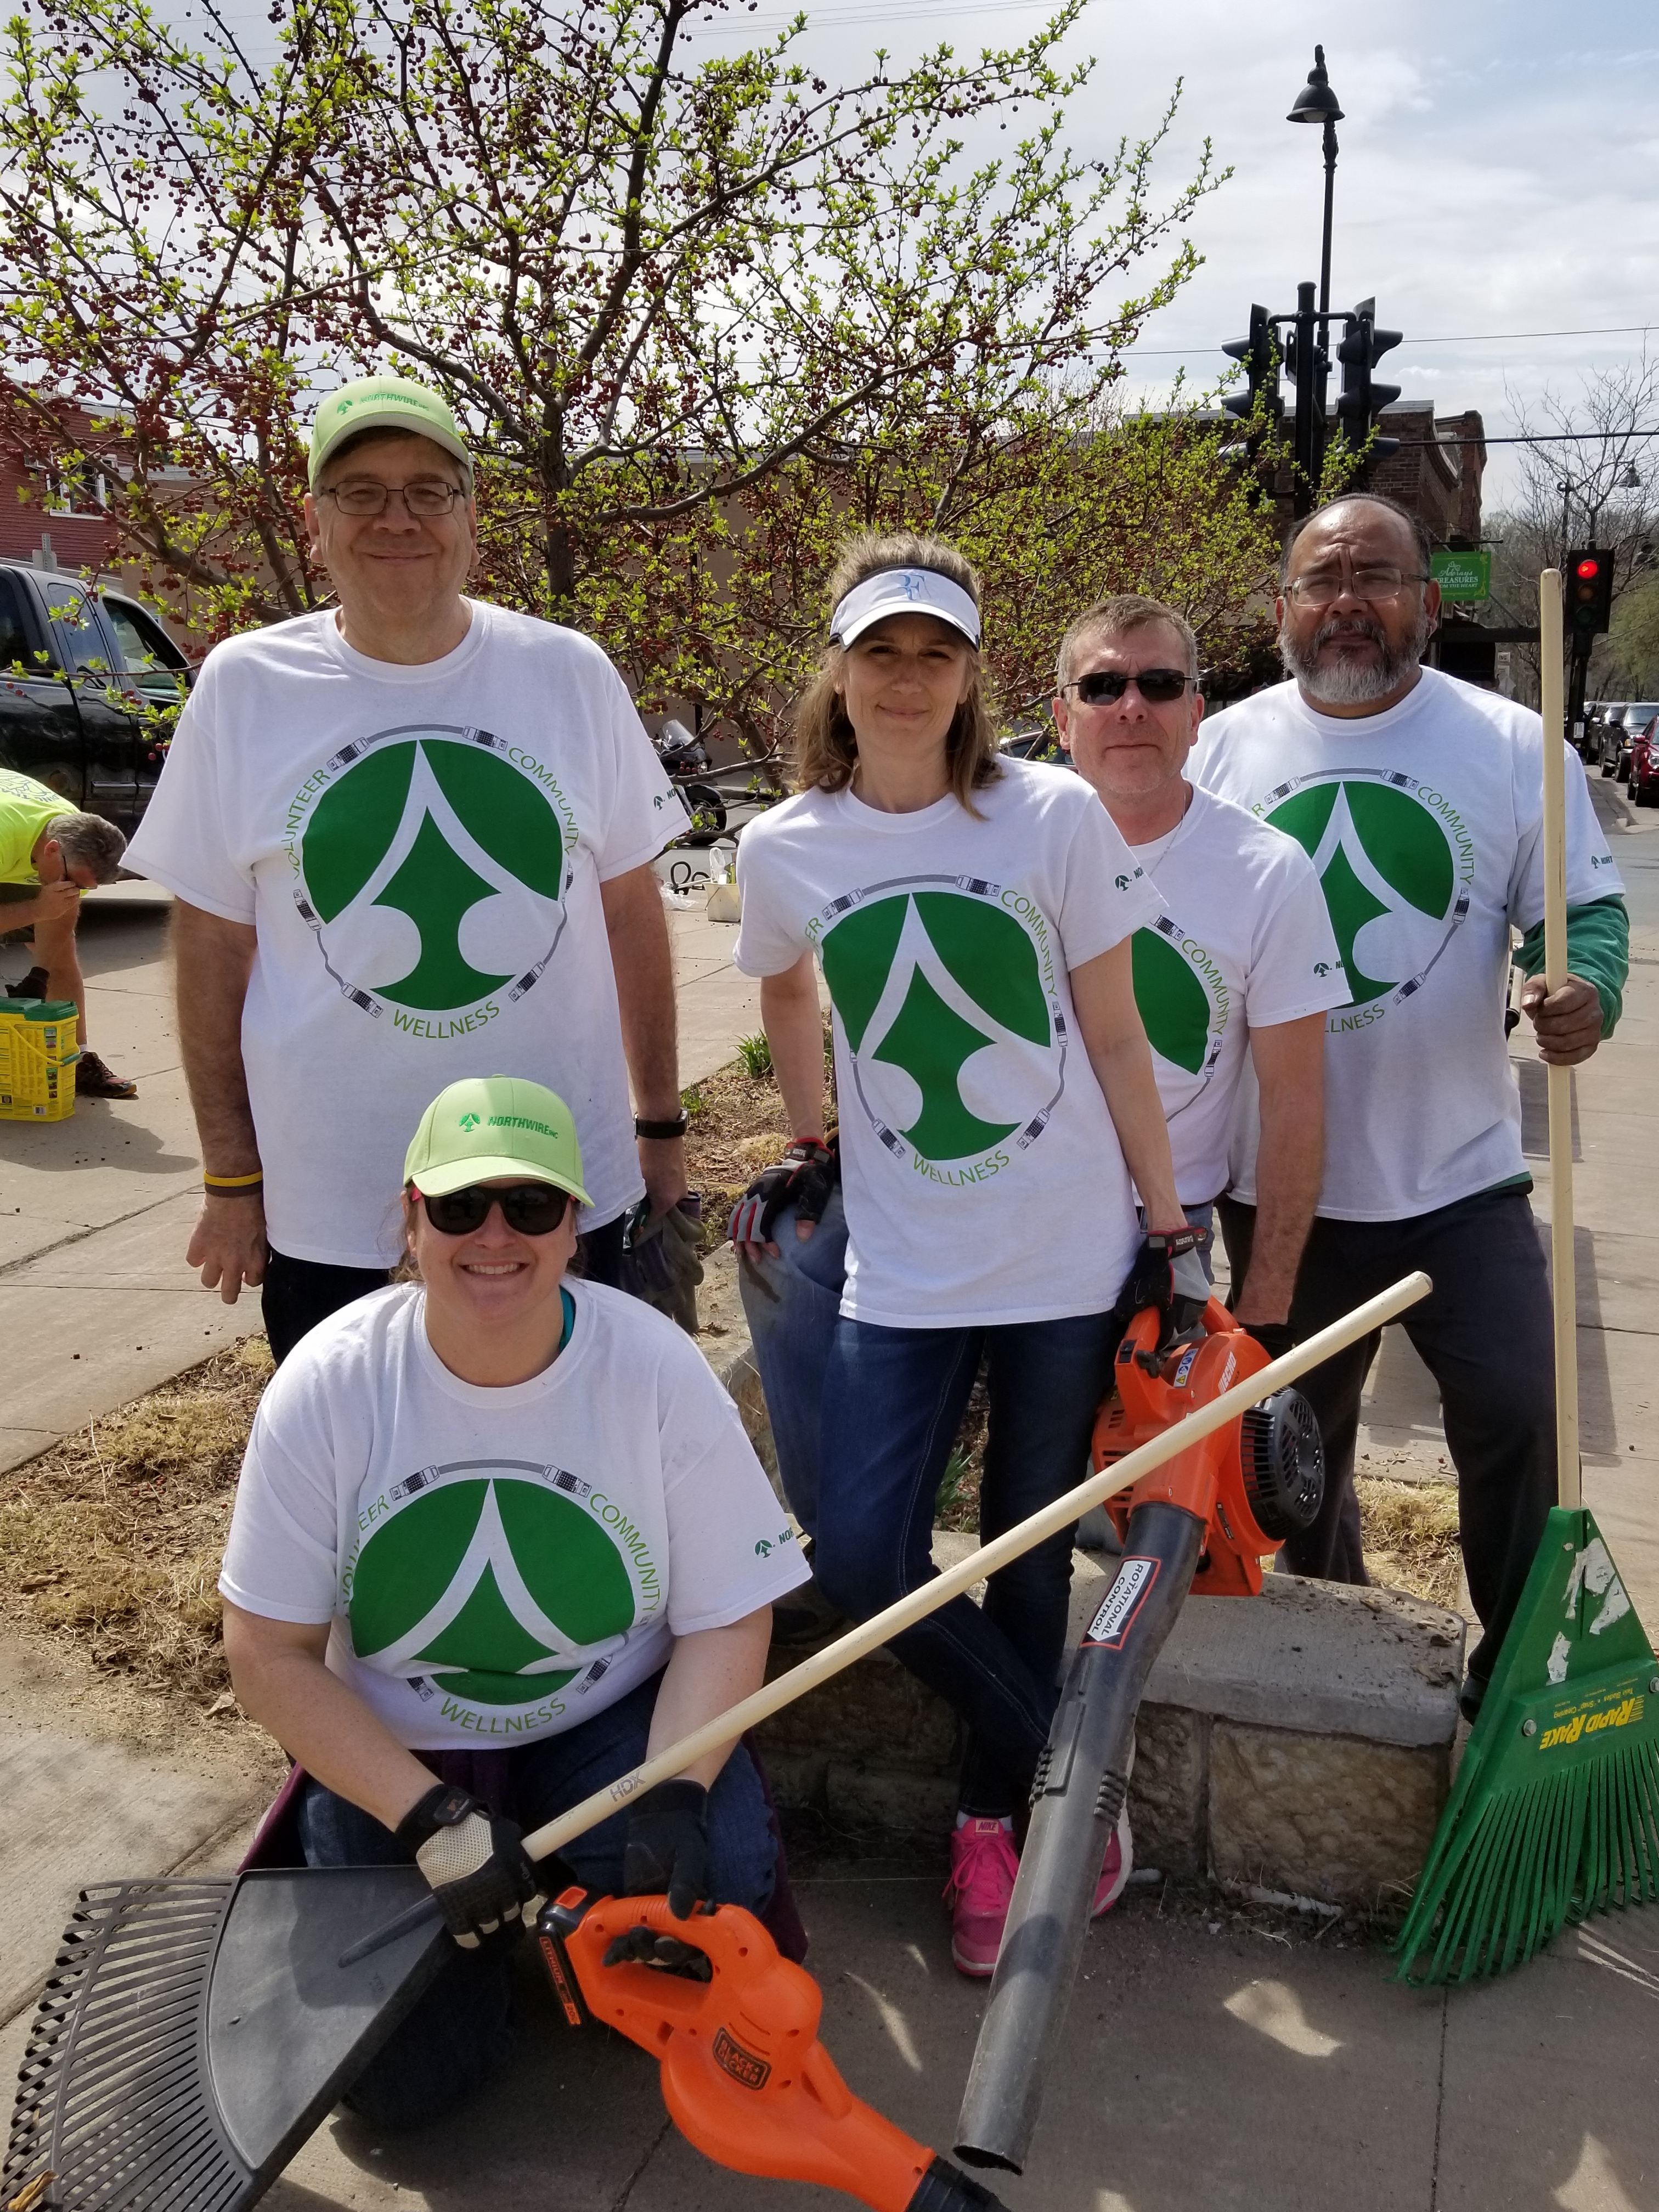 Northwire Volunteers to clean up in the community